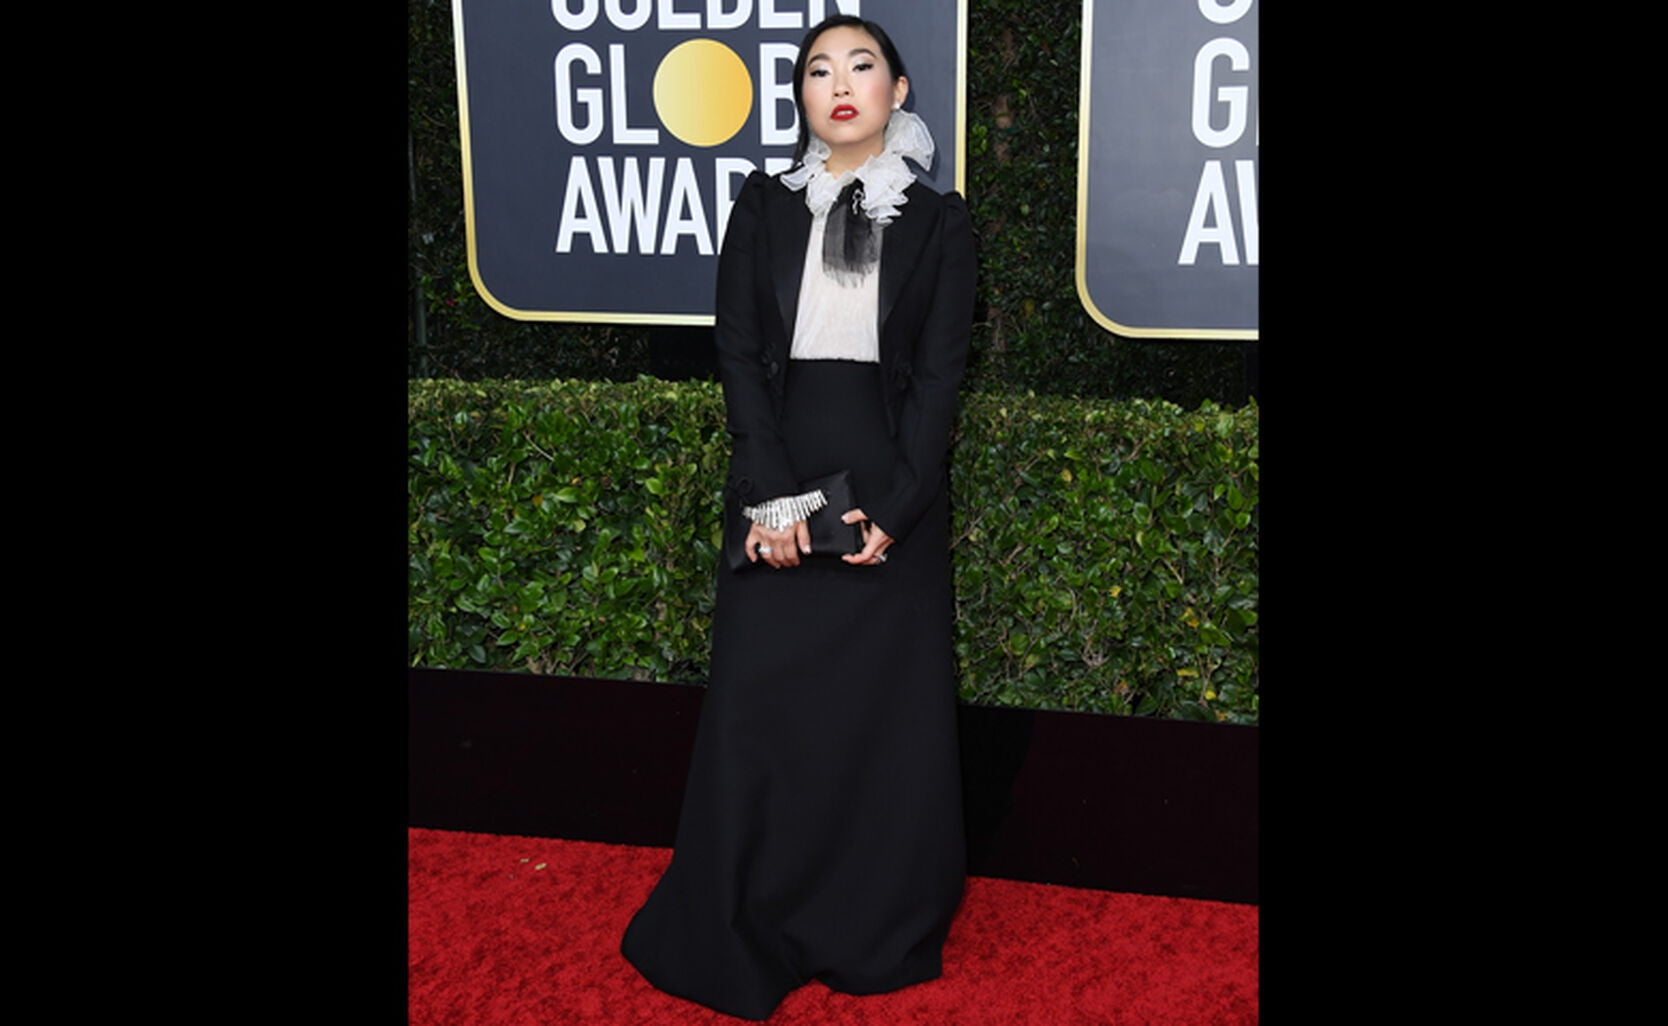 Actress musician Awkwafina at the Globes